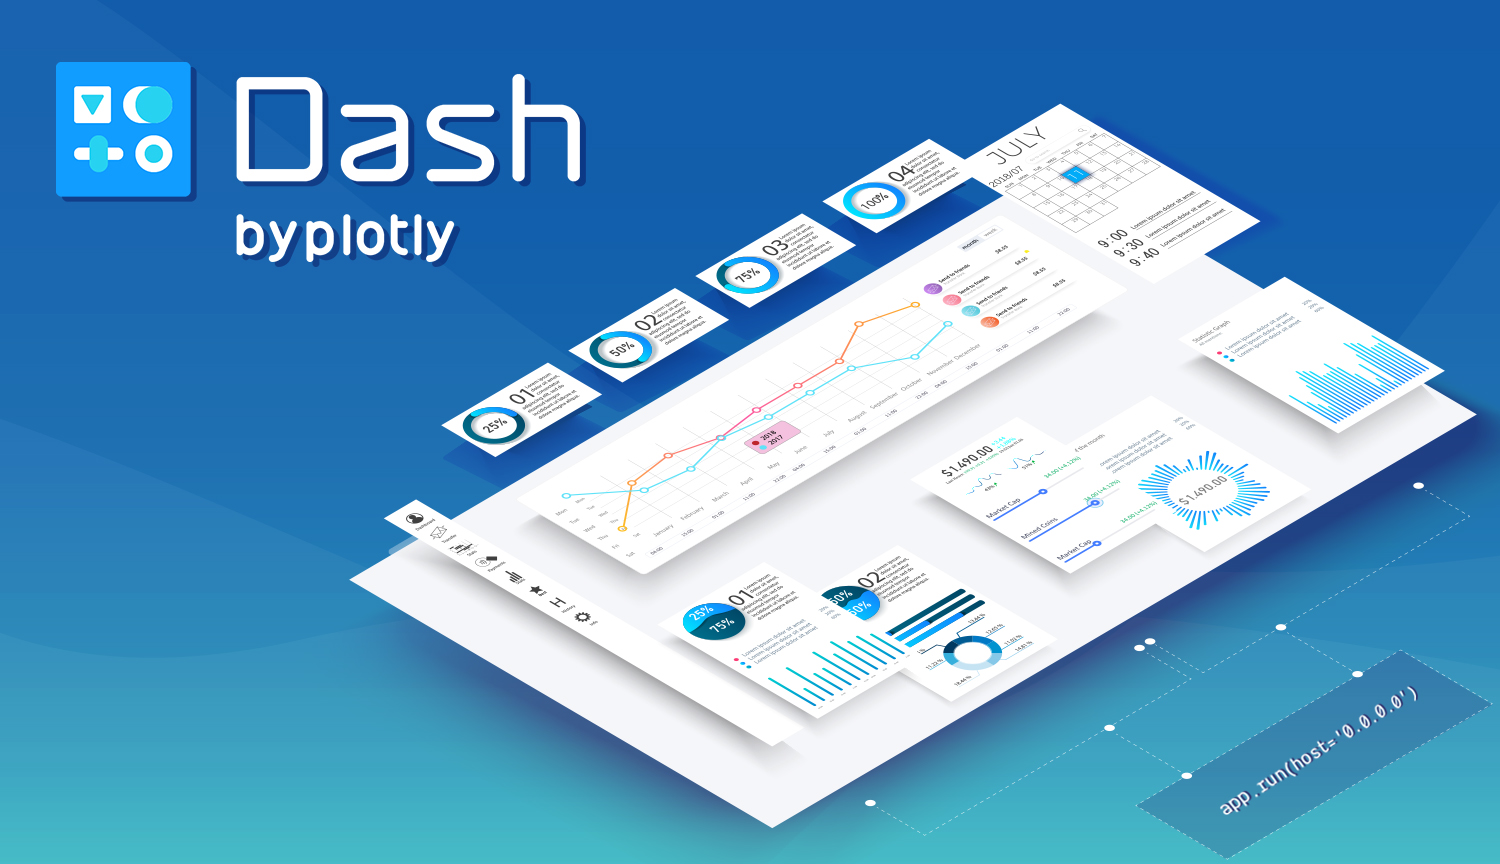 dash plotly